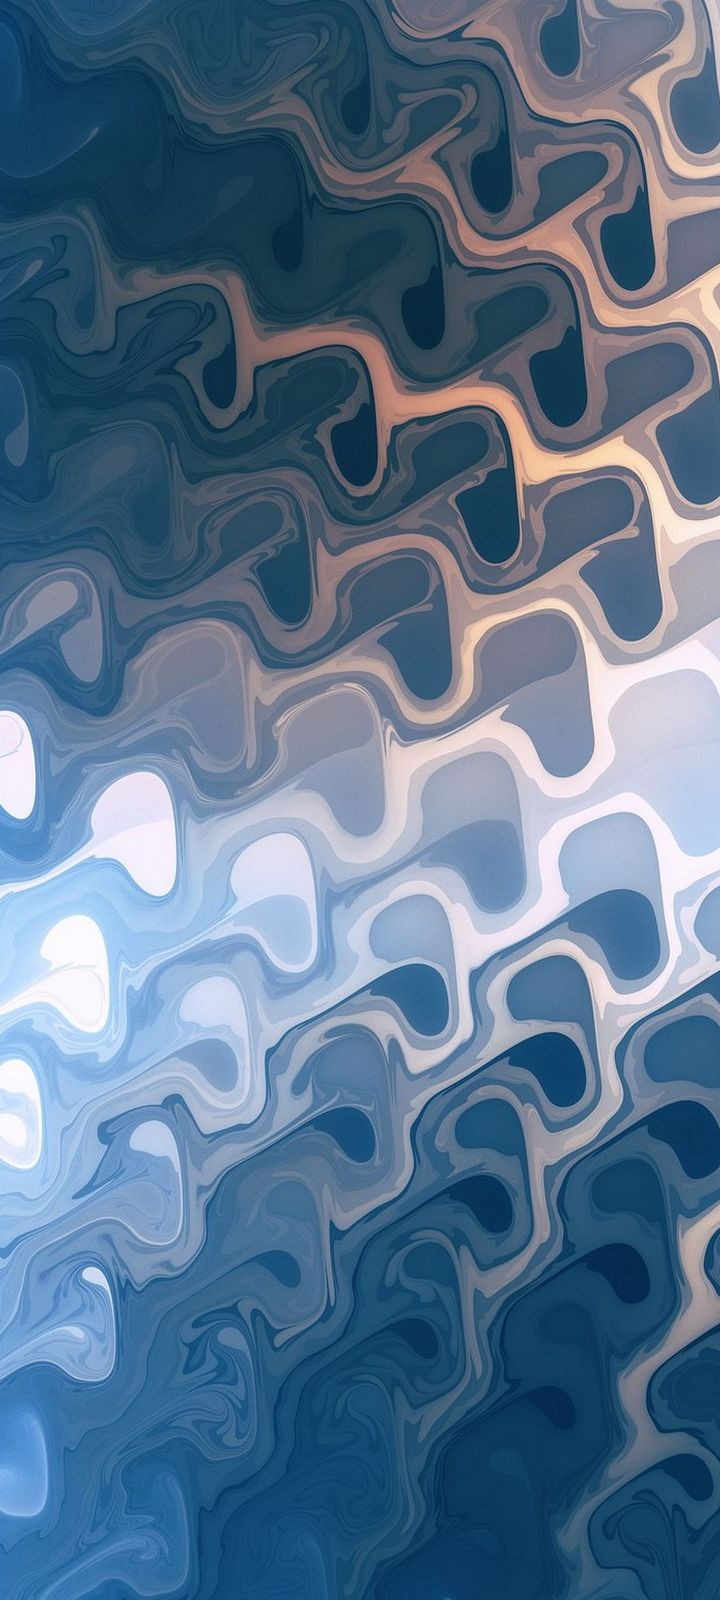 Painted Blue 3D Abstract Wallpaper 720x1600